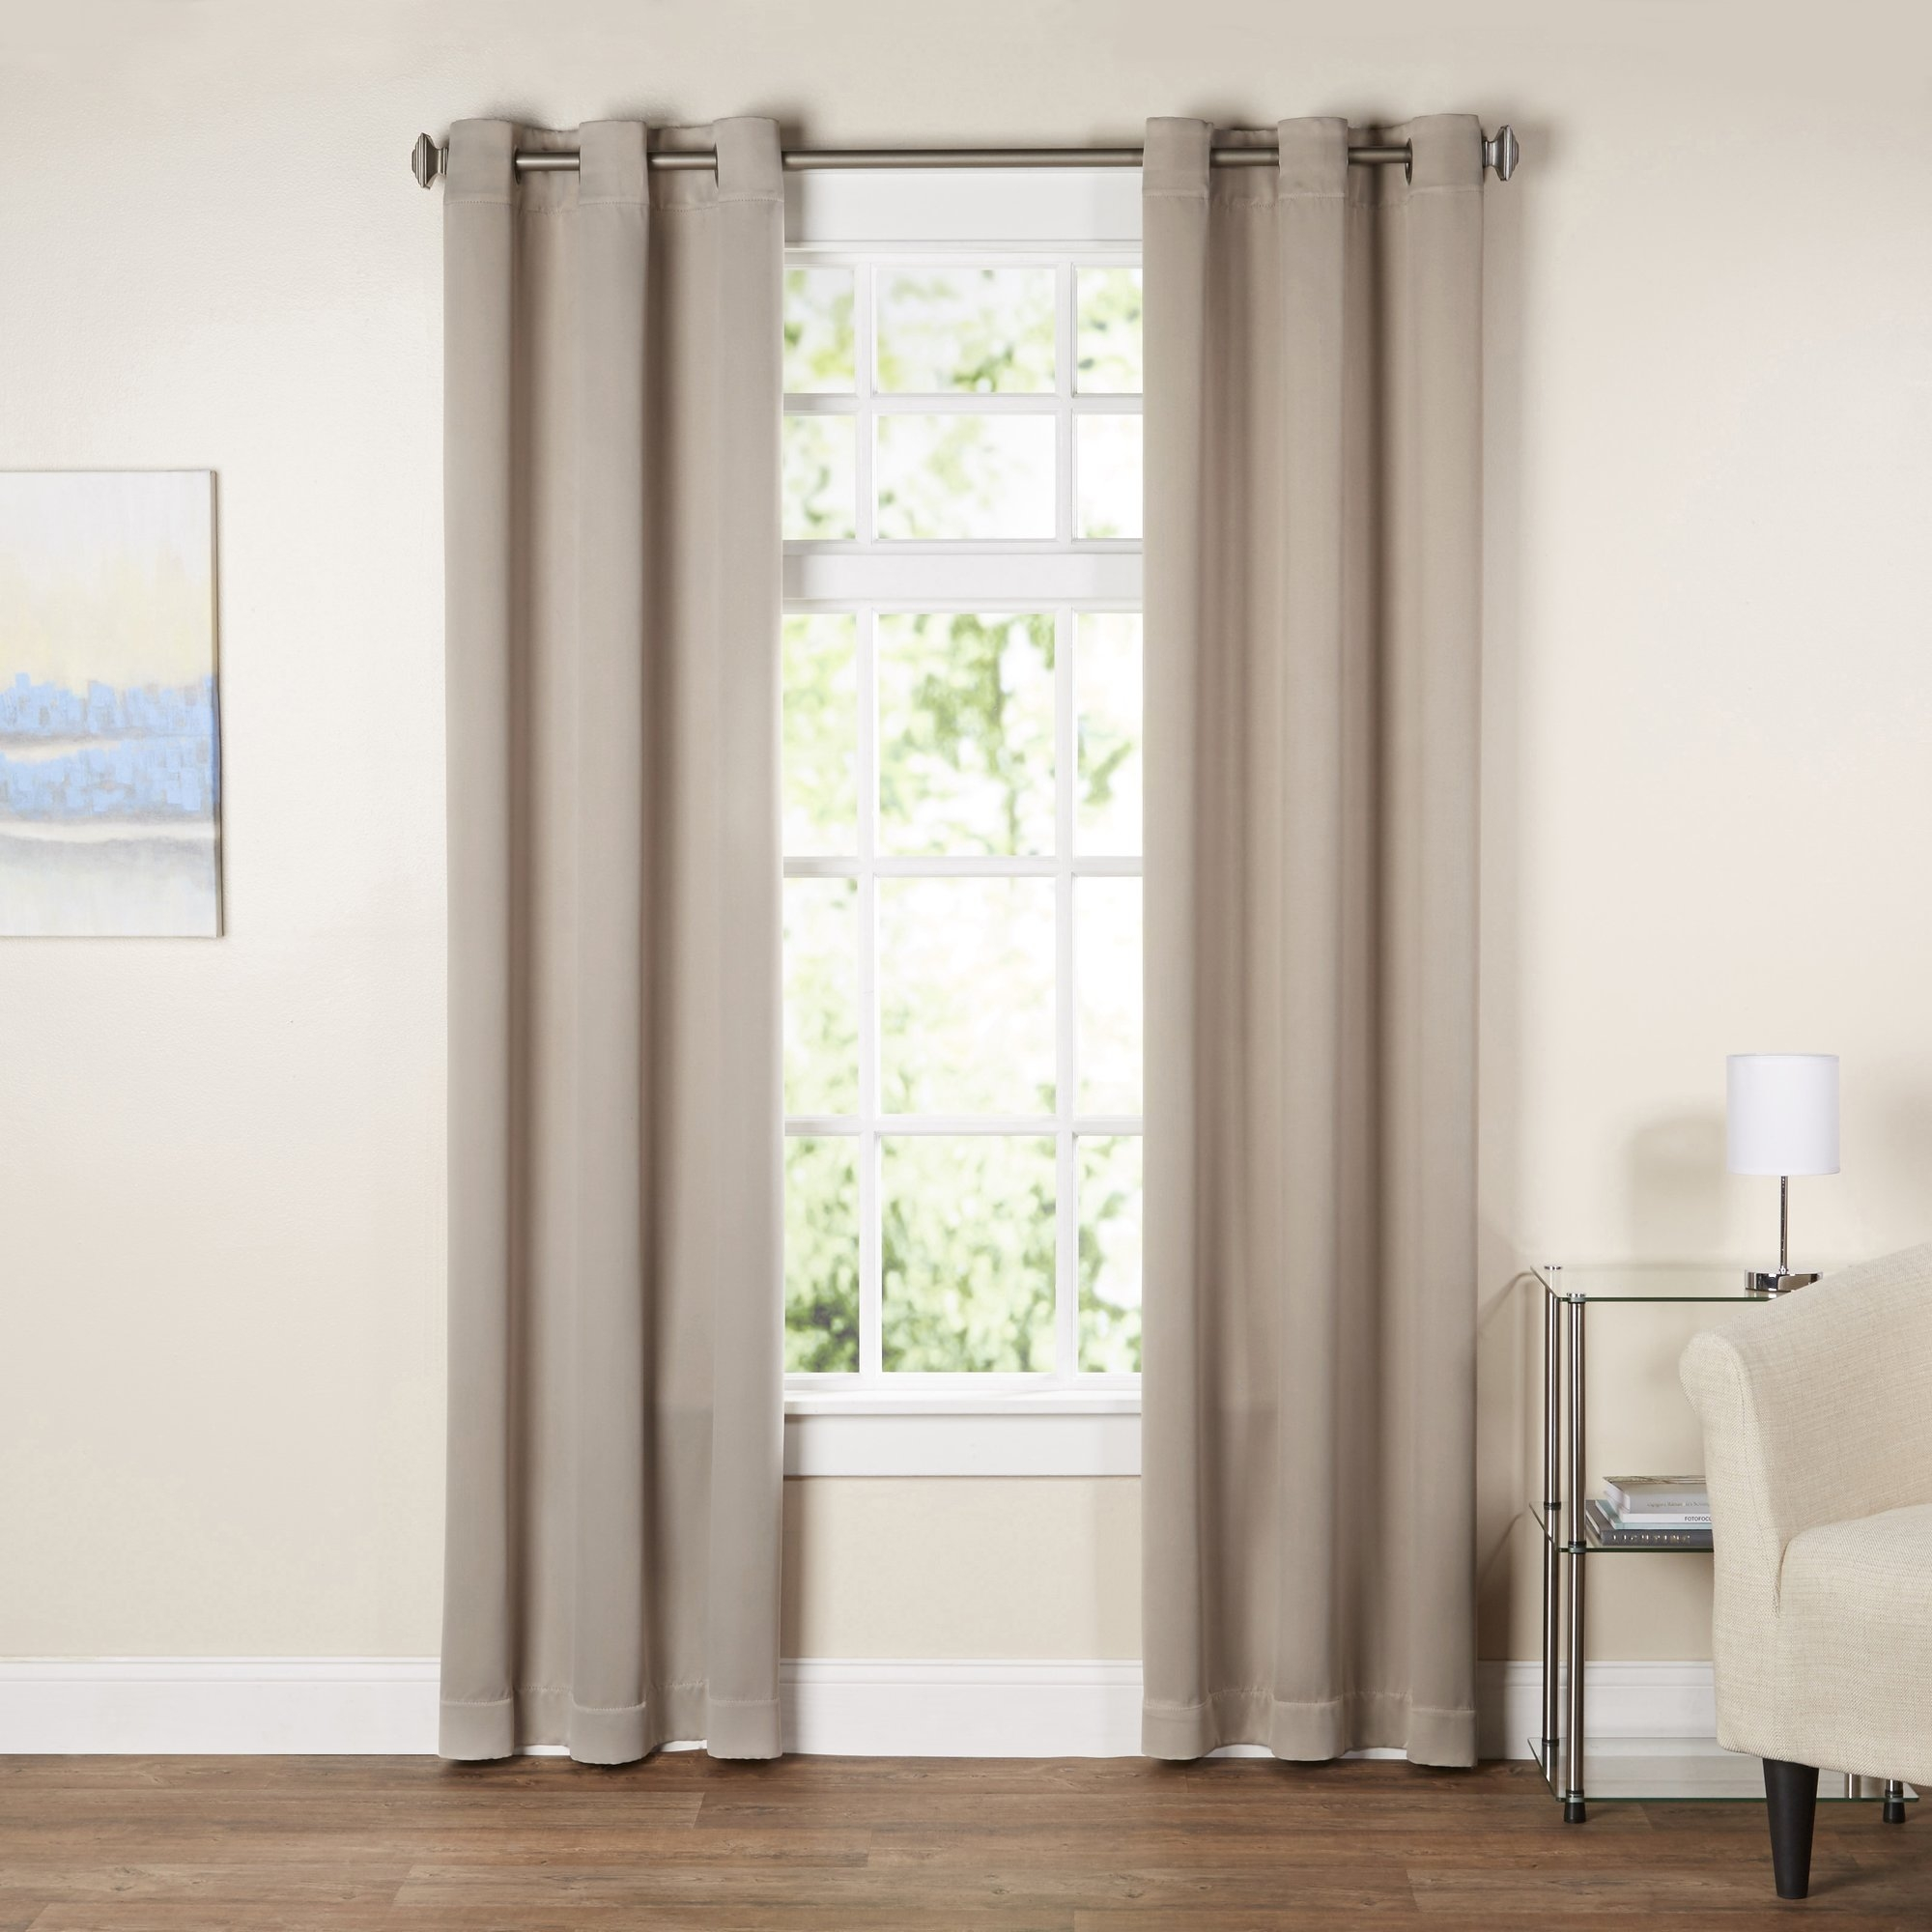 Curtains Drapes Youll Love Wayfair Throughout Extra Wide Linen Curtains (Image 2 of 15)